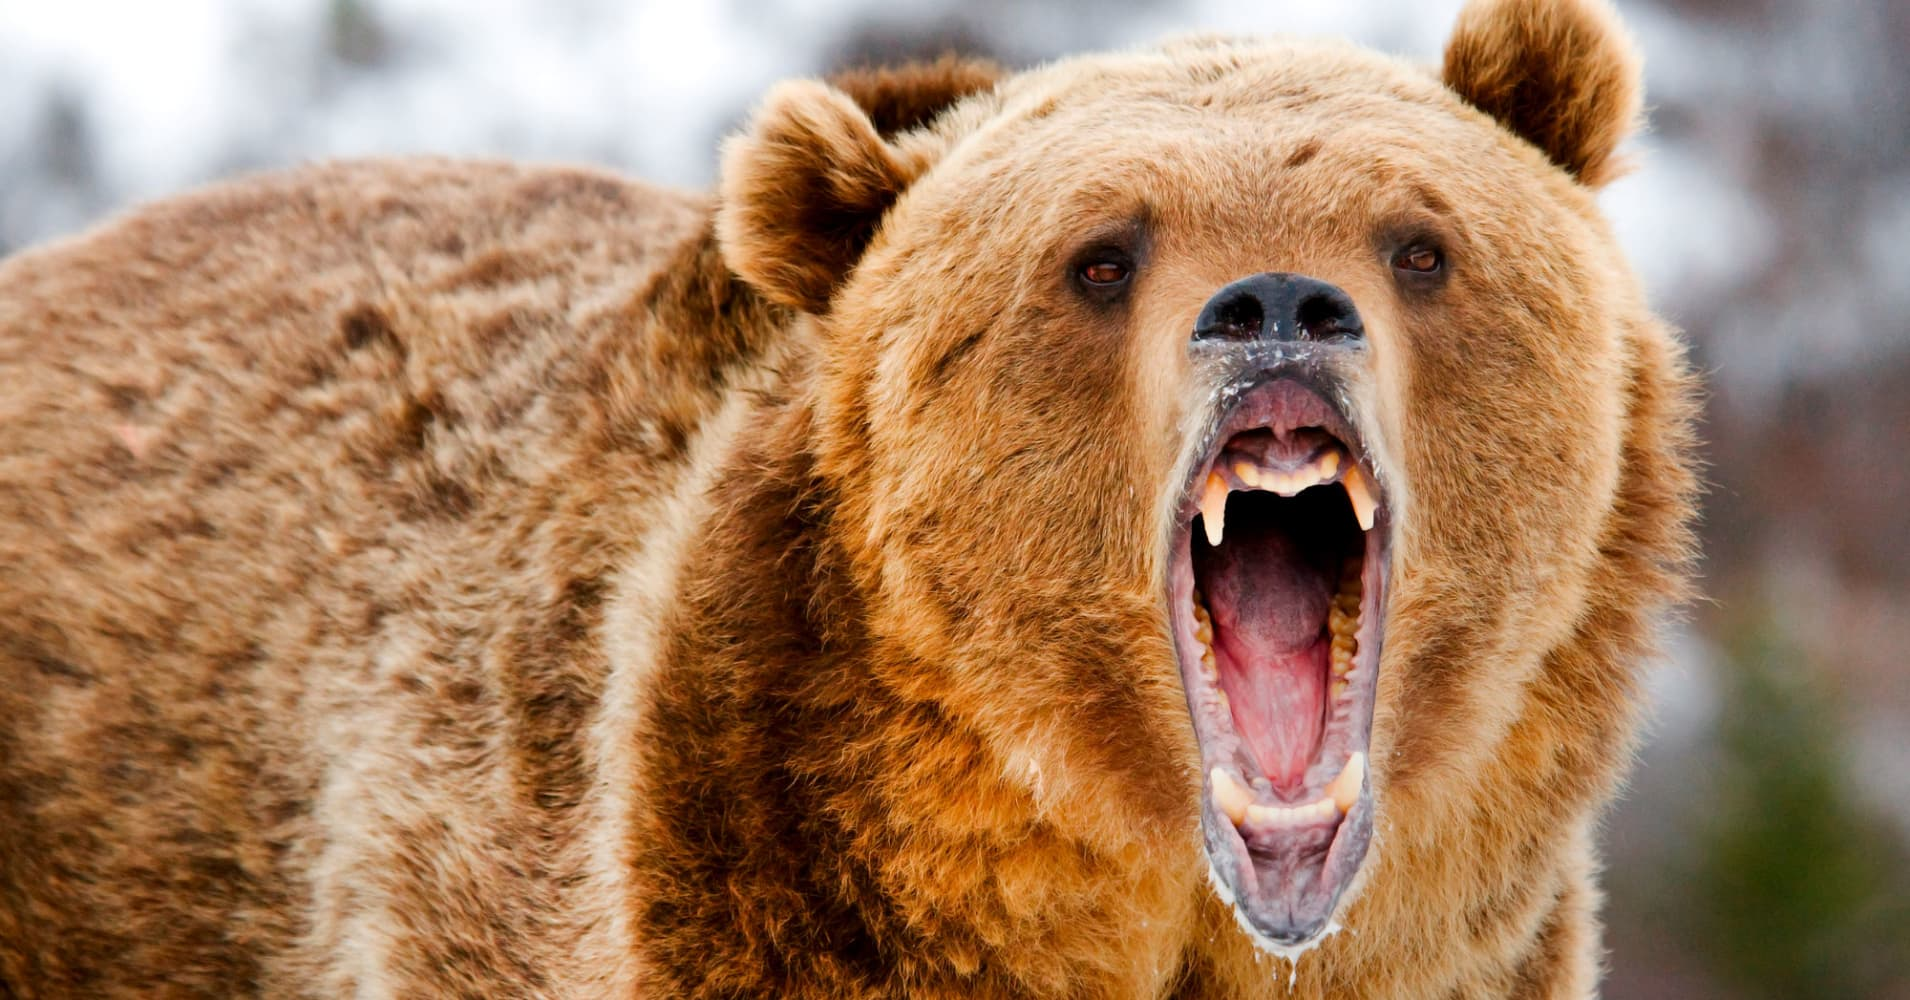 Monster rallies are often synonymous with bear markets, Boockvar warns